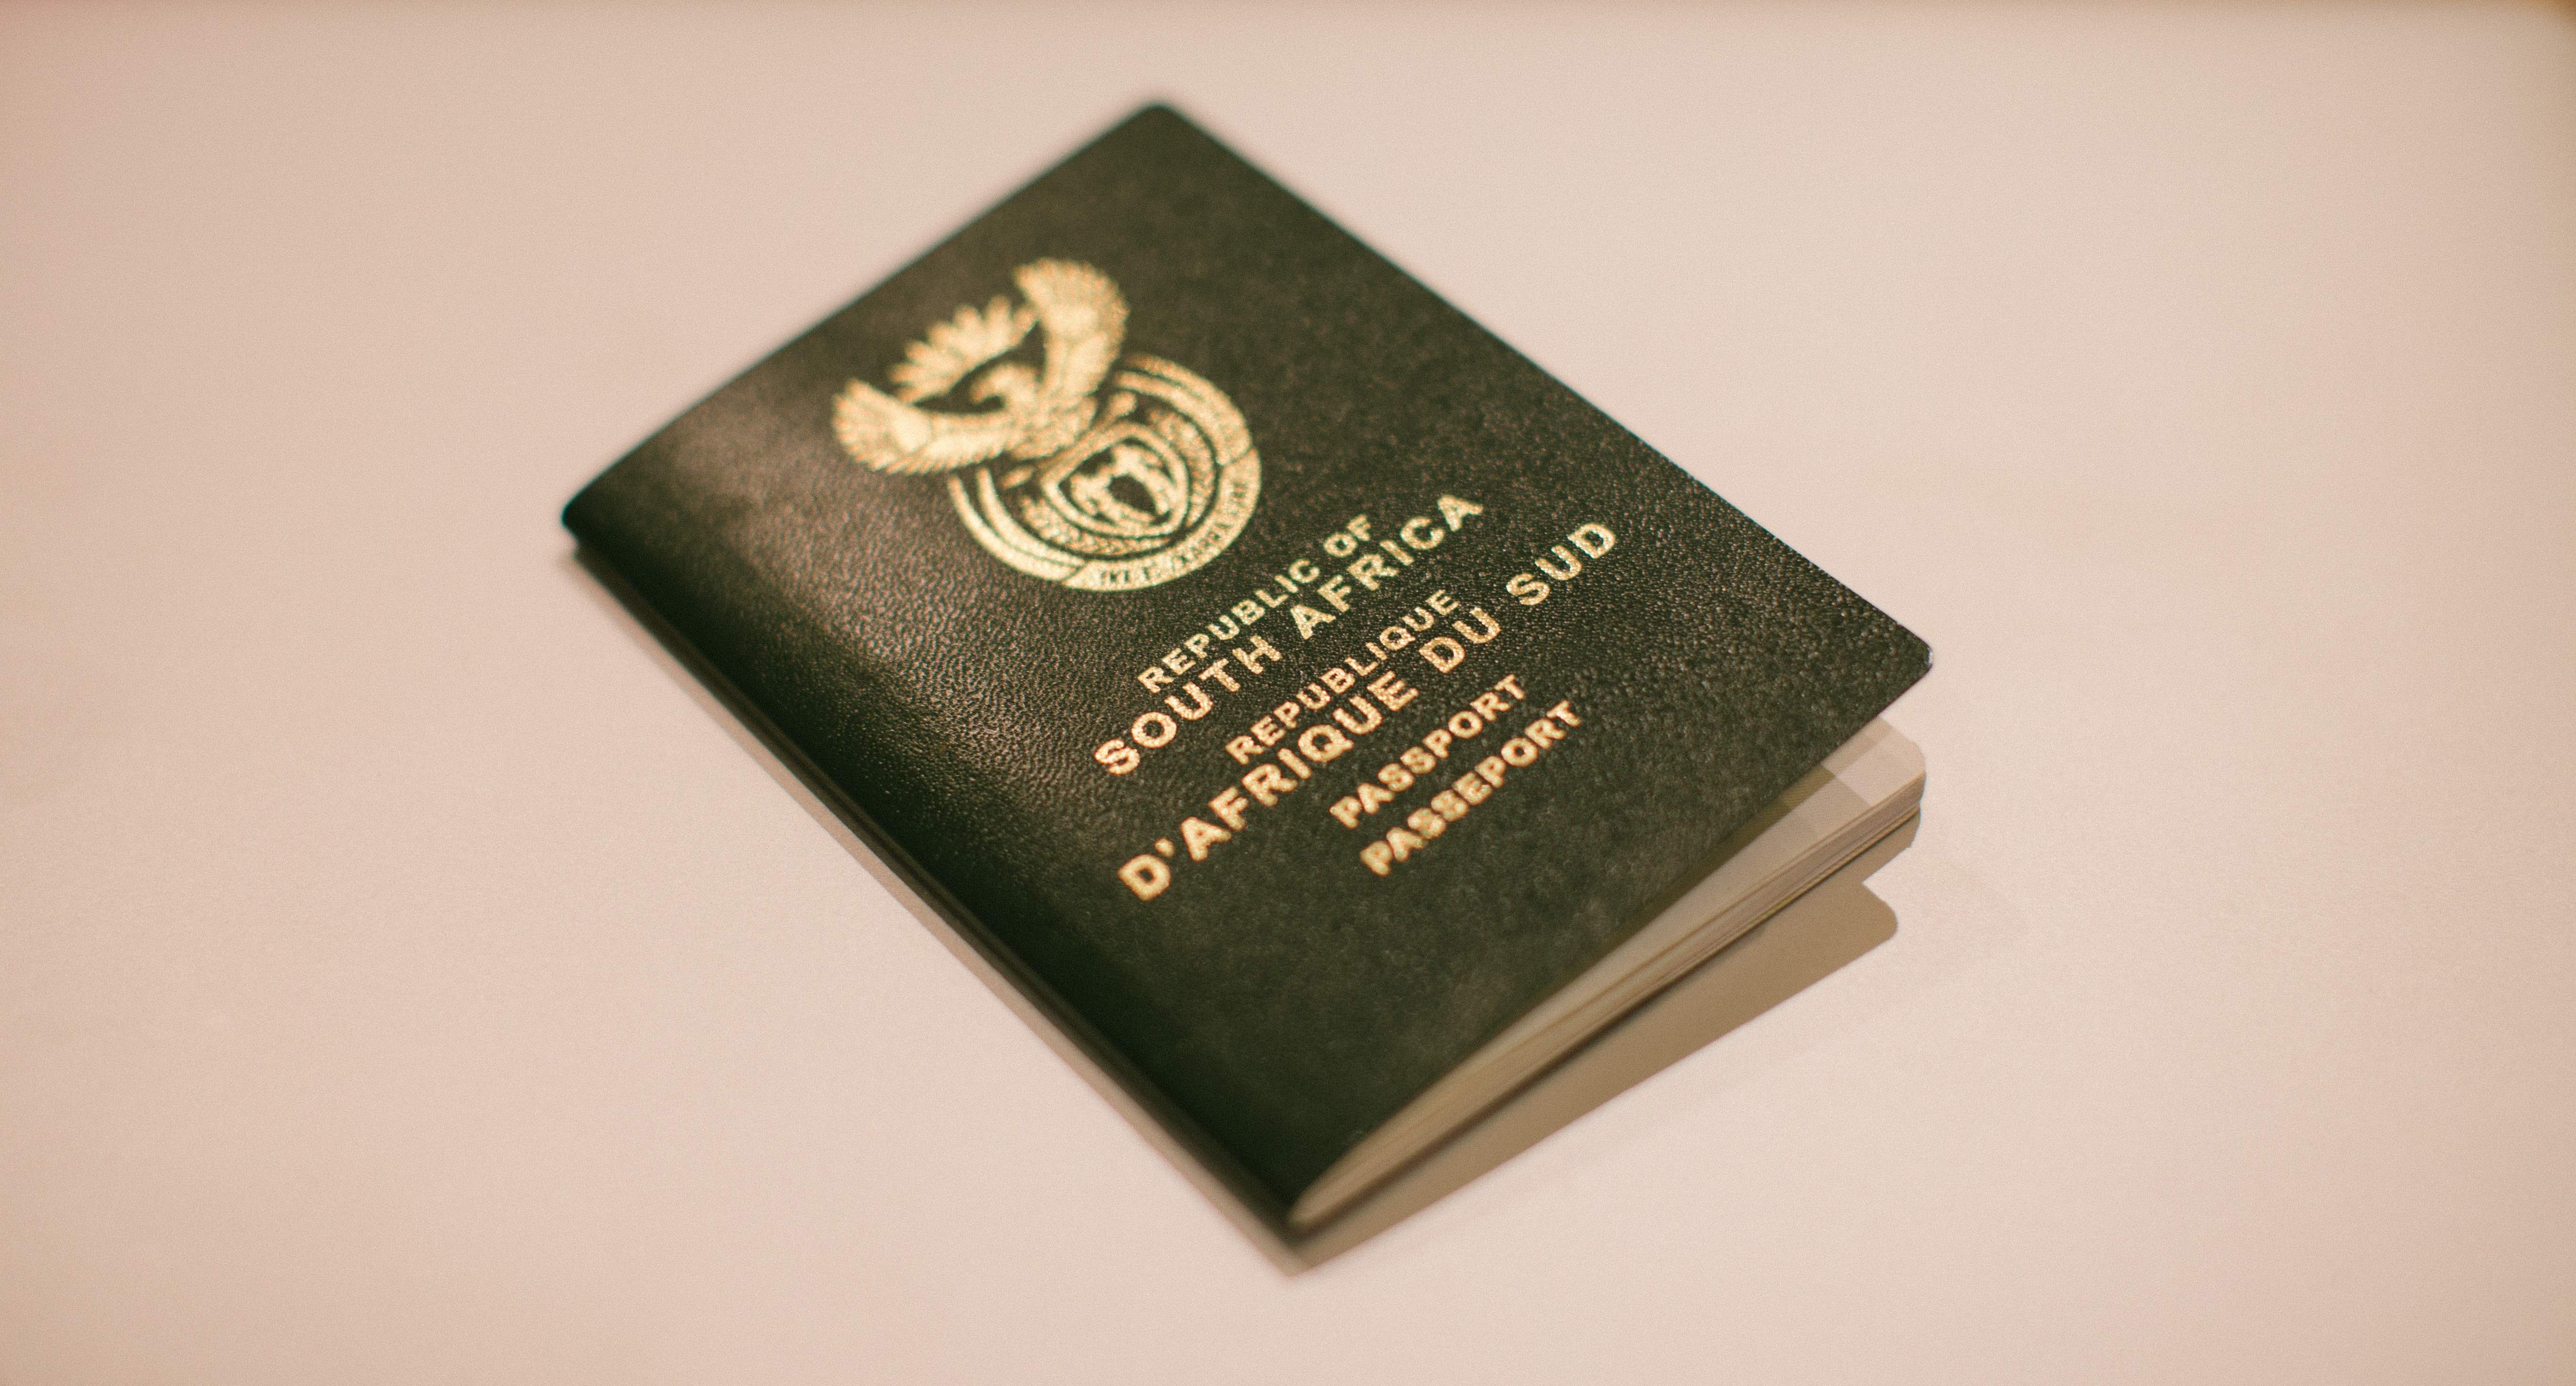 SECOND PASSPORT AND RESIDENCE INVESTMENT PROGRAMS FOR WEALTHY SOUTH AFRICANS